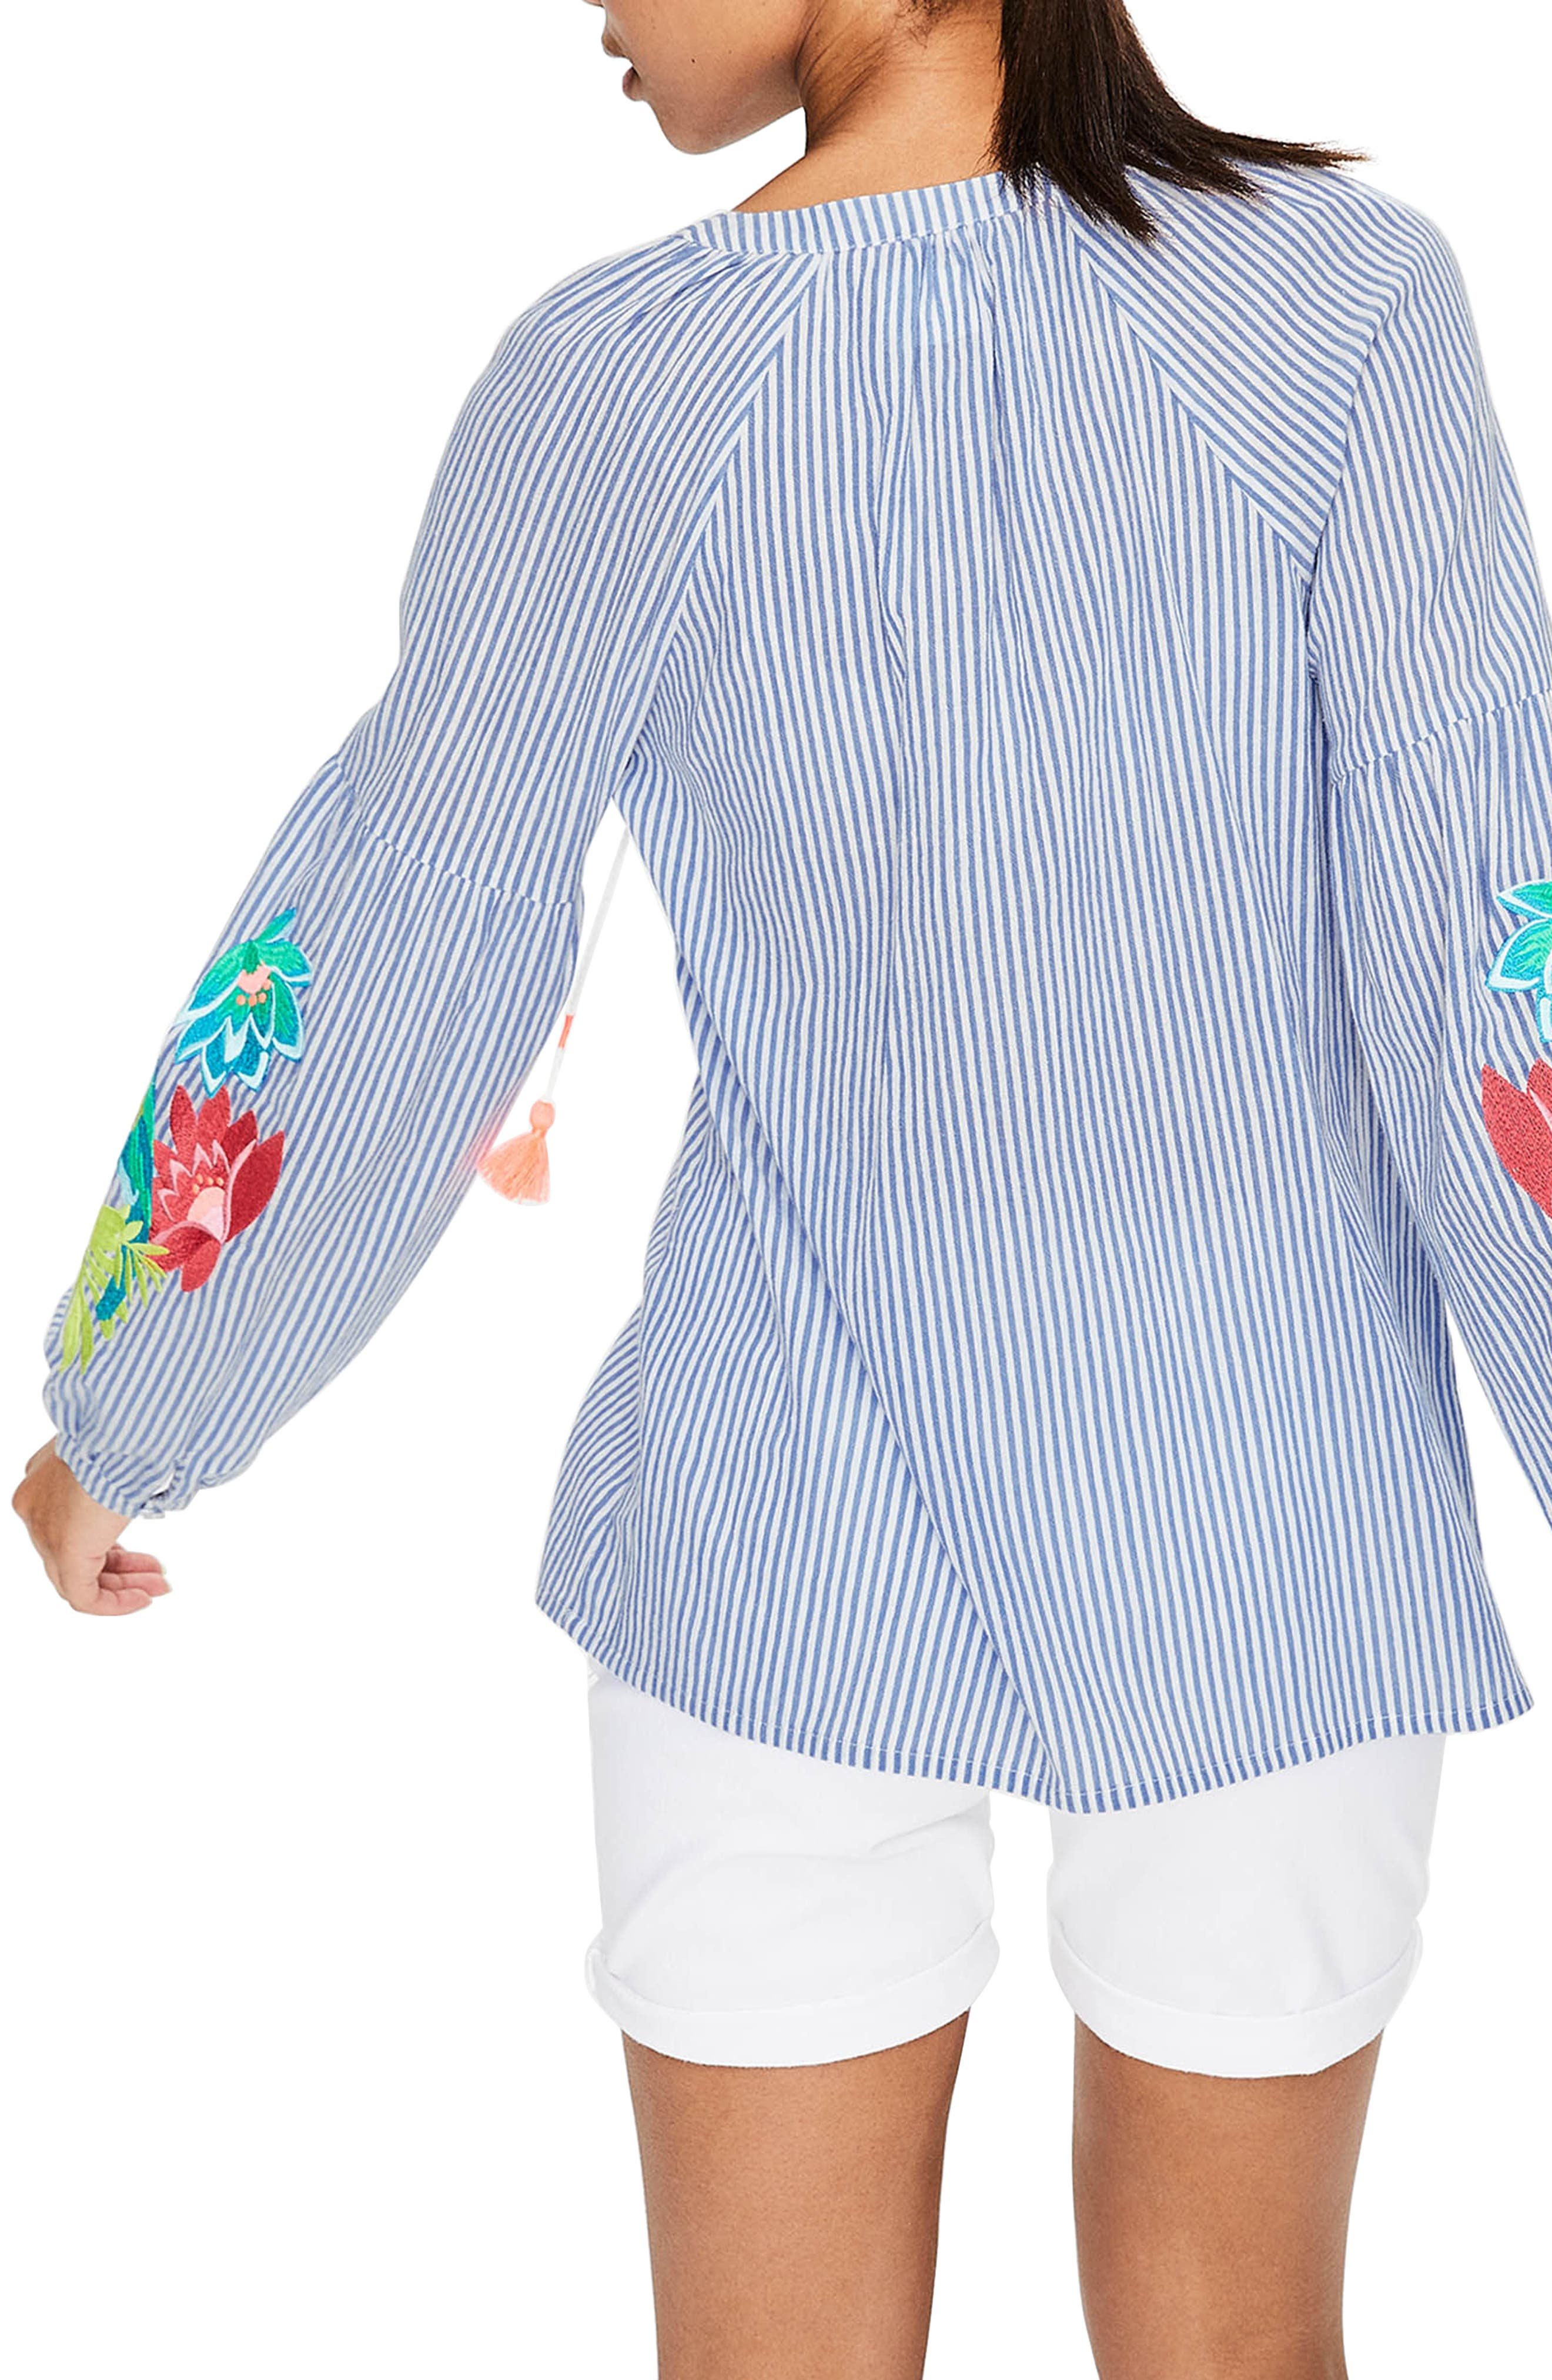 Embroidered Tassel Top,                             Alternate thumbnail 2, color,                             Floral Parrot Embroi